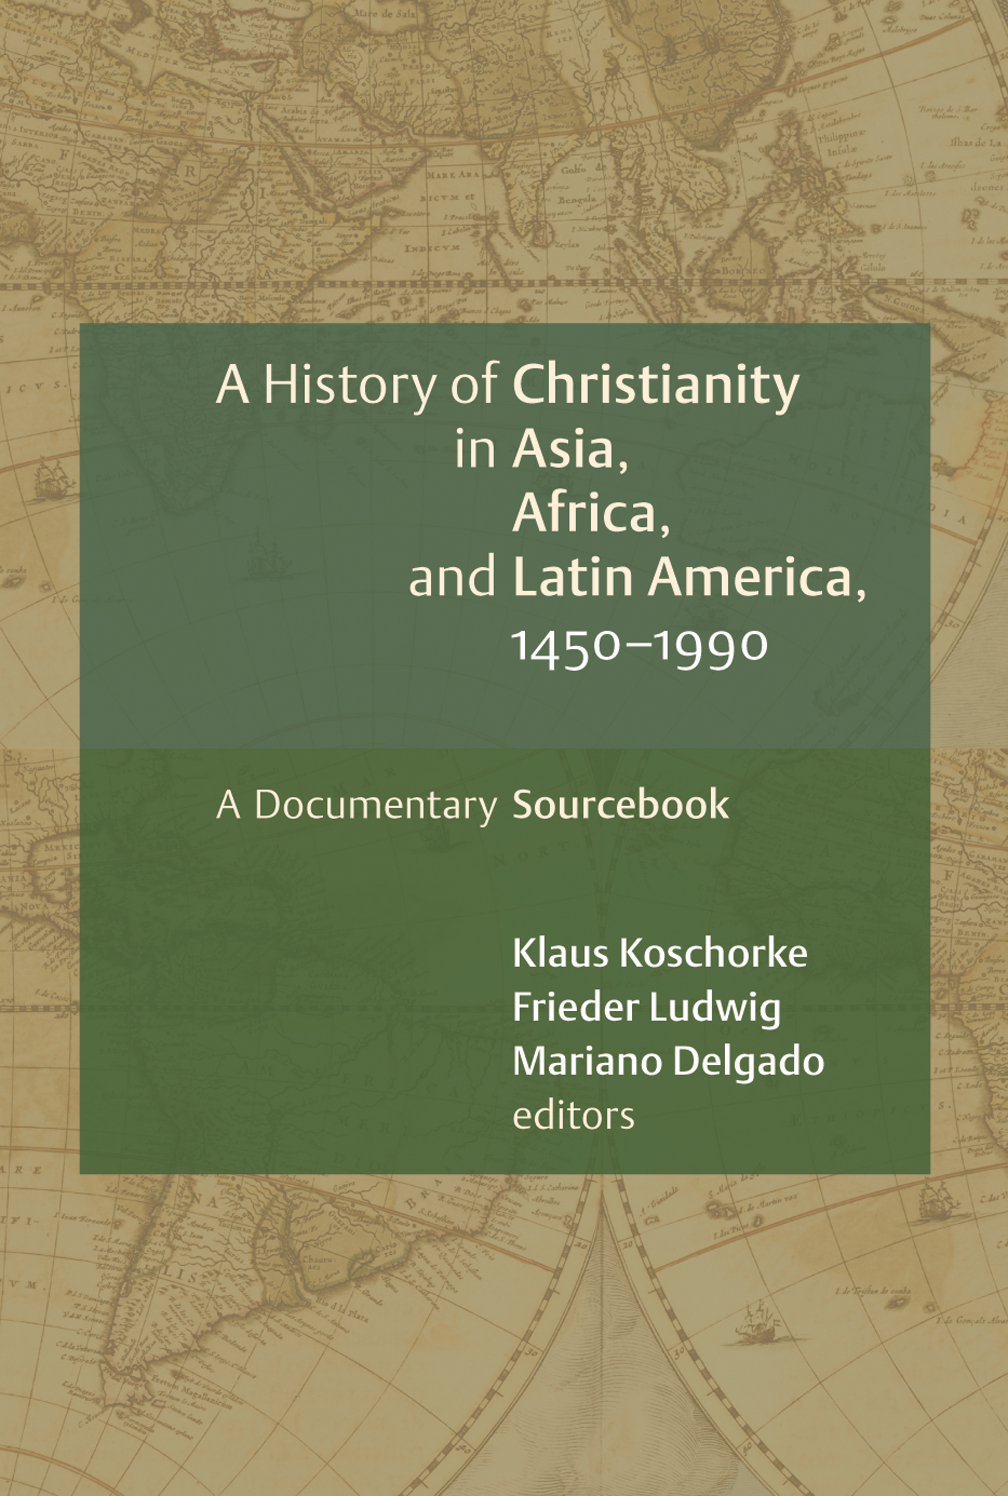 vernacular christianity essays in the social anthropology of religion Bronislaw malinowski and religion and other essays (1948) malinowski helped develop the field of much of the social anthropology.